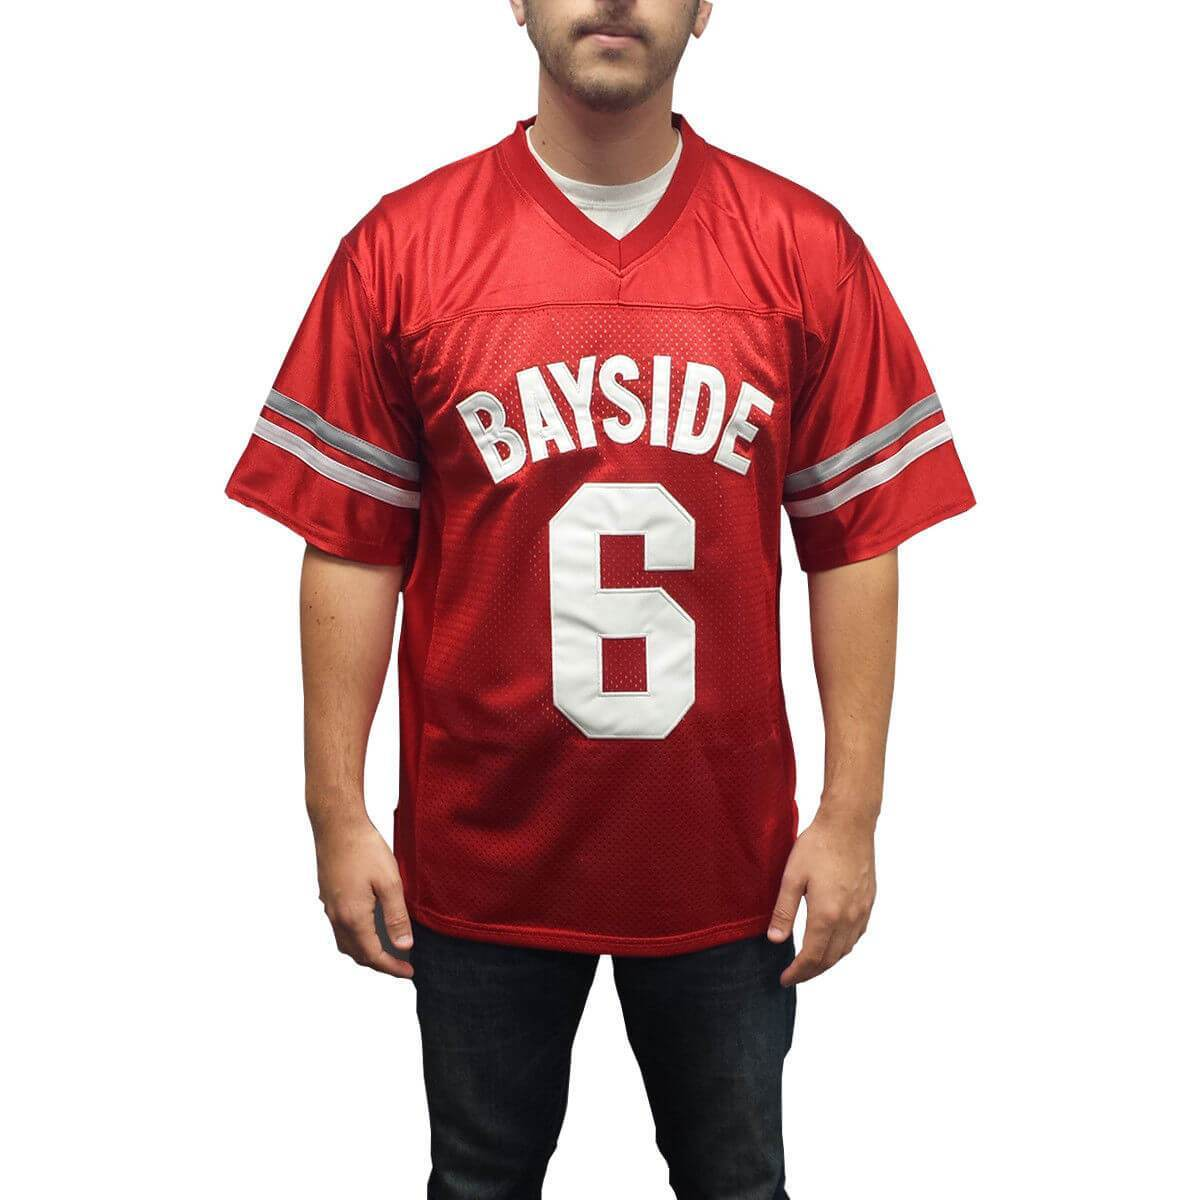 Saved By The Bell AC Slater 6 Bayside Football Jersey - Jersey Champs - Custom Basketball, Baseball, Football & Hockey Jerseys